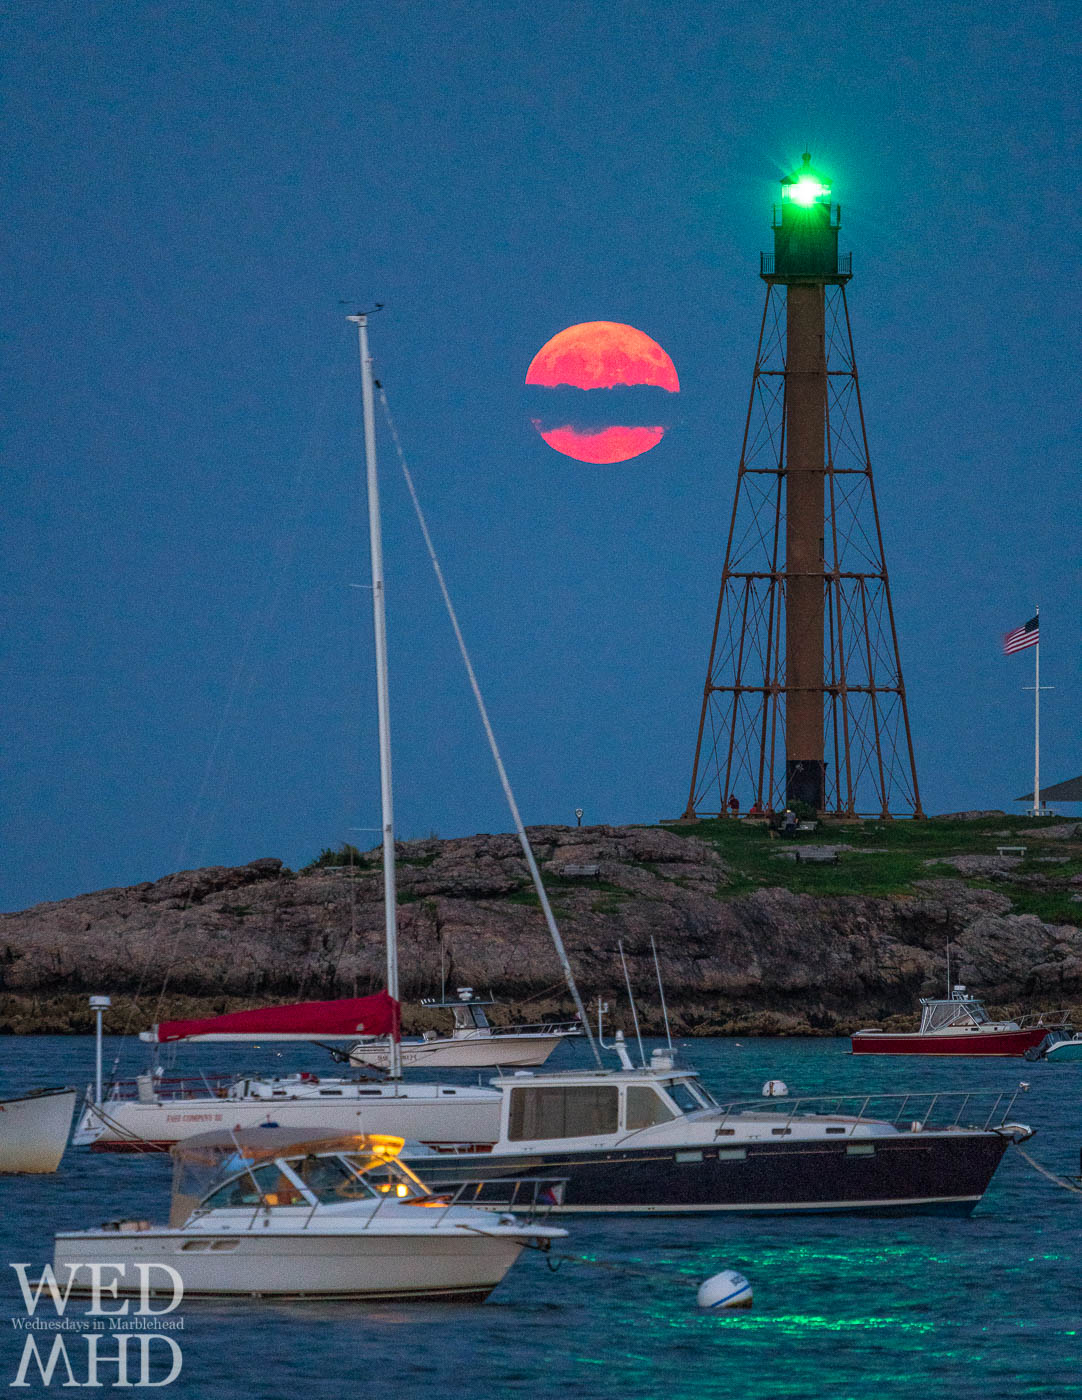 The moon rises through a band of clouds making it appear broken in half against the green glow of Marblehead Light